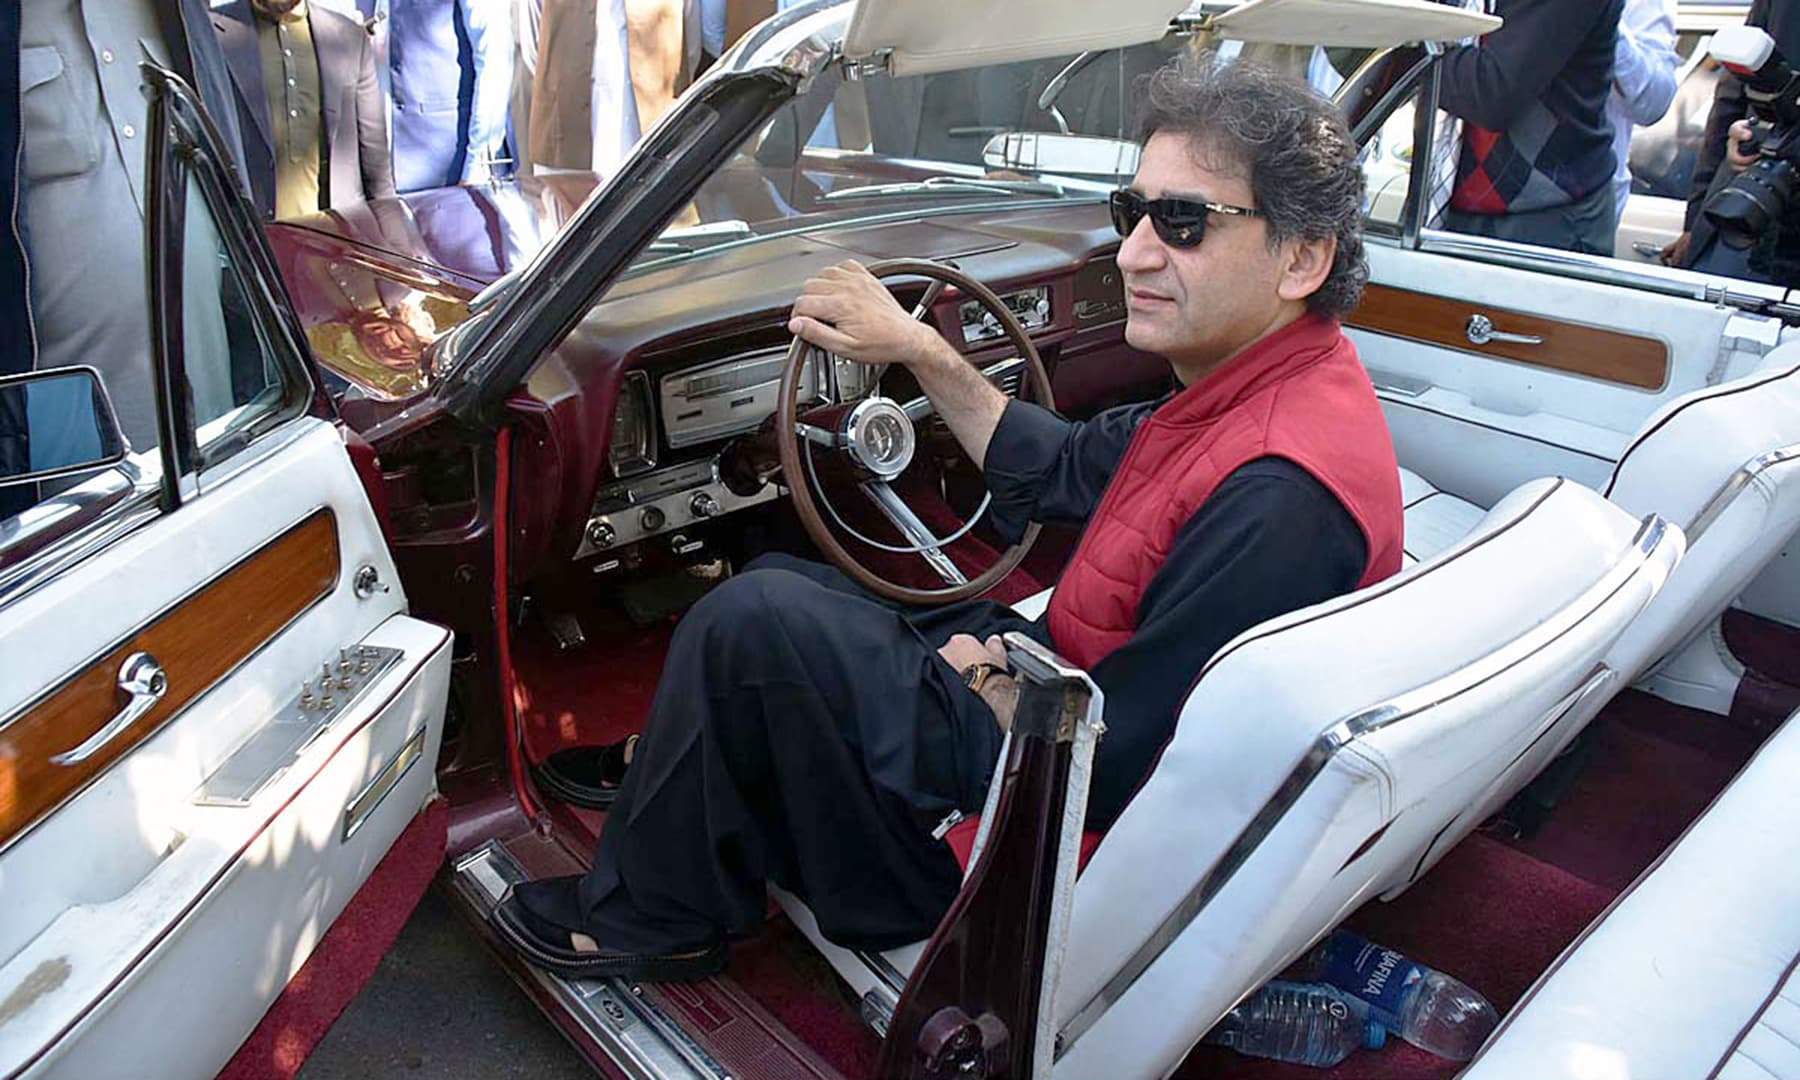 Senior Minister of Tourism, Sports, and Culture Mohammad Atif Khan interacting with the displayed vehicles at the classic car show in Peshawar. —@PTIofficial